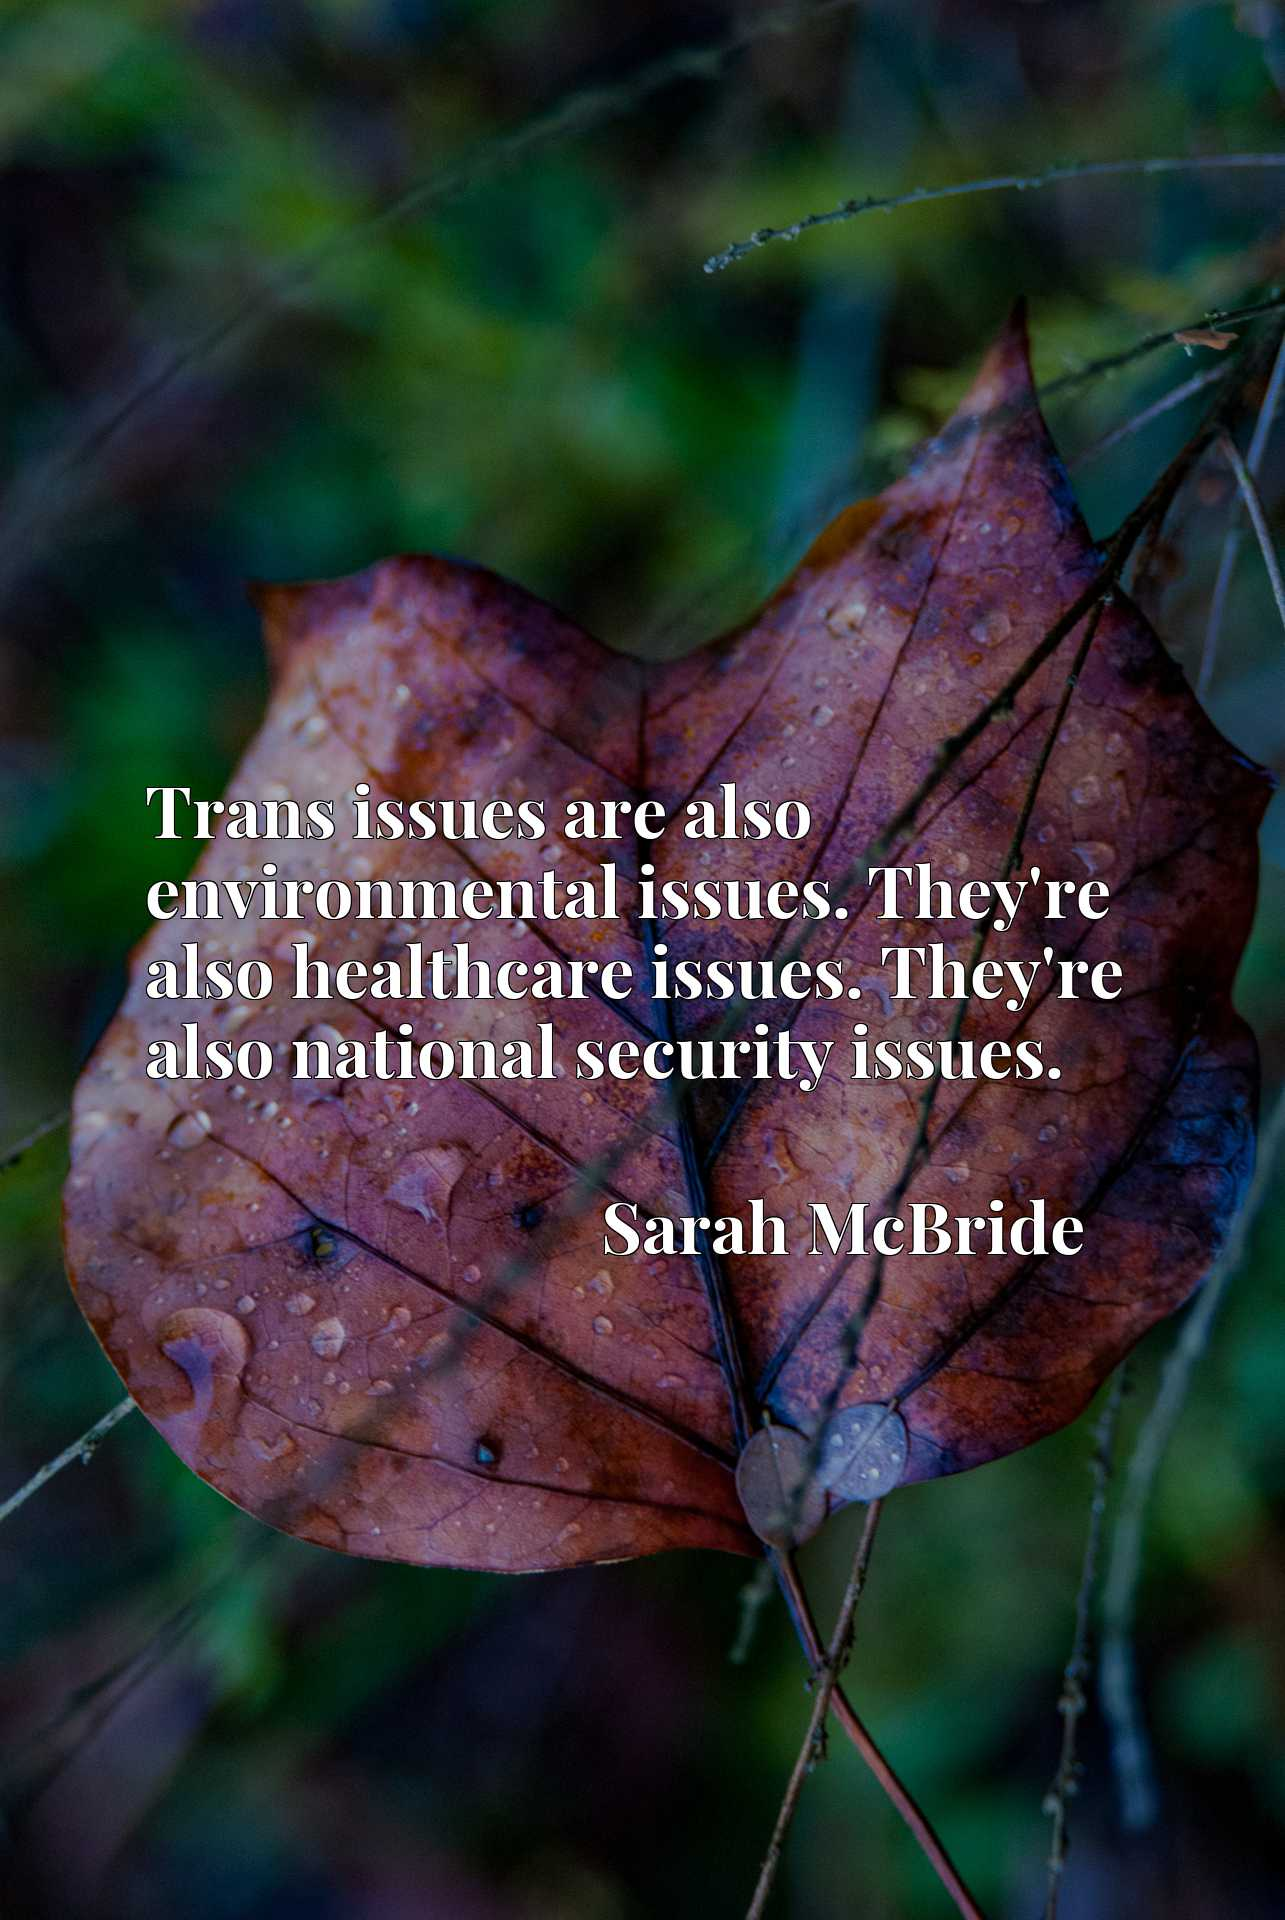 Trans issues are also environmental issues. They're also healthcare issues. They're also national security issues.